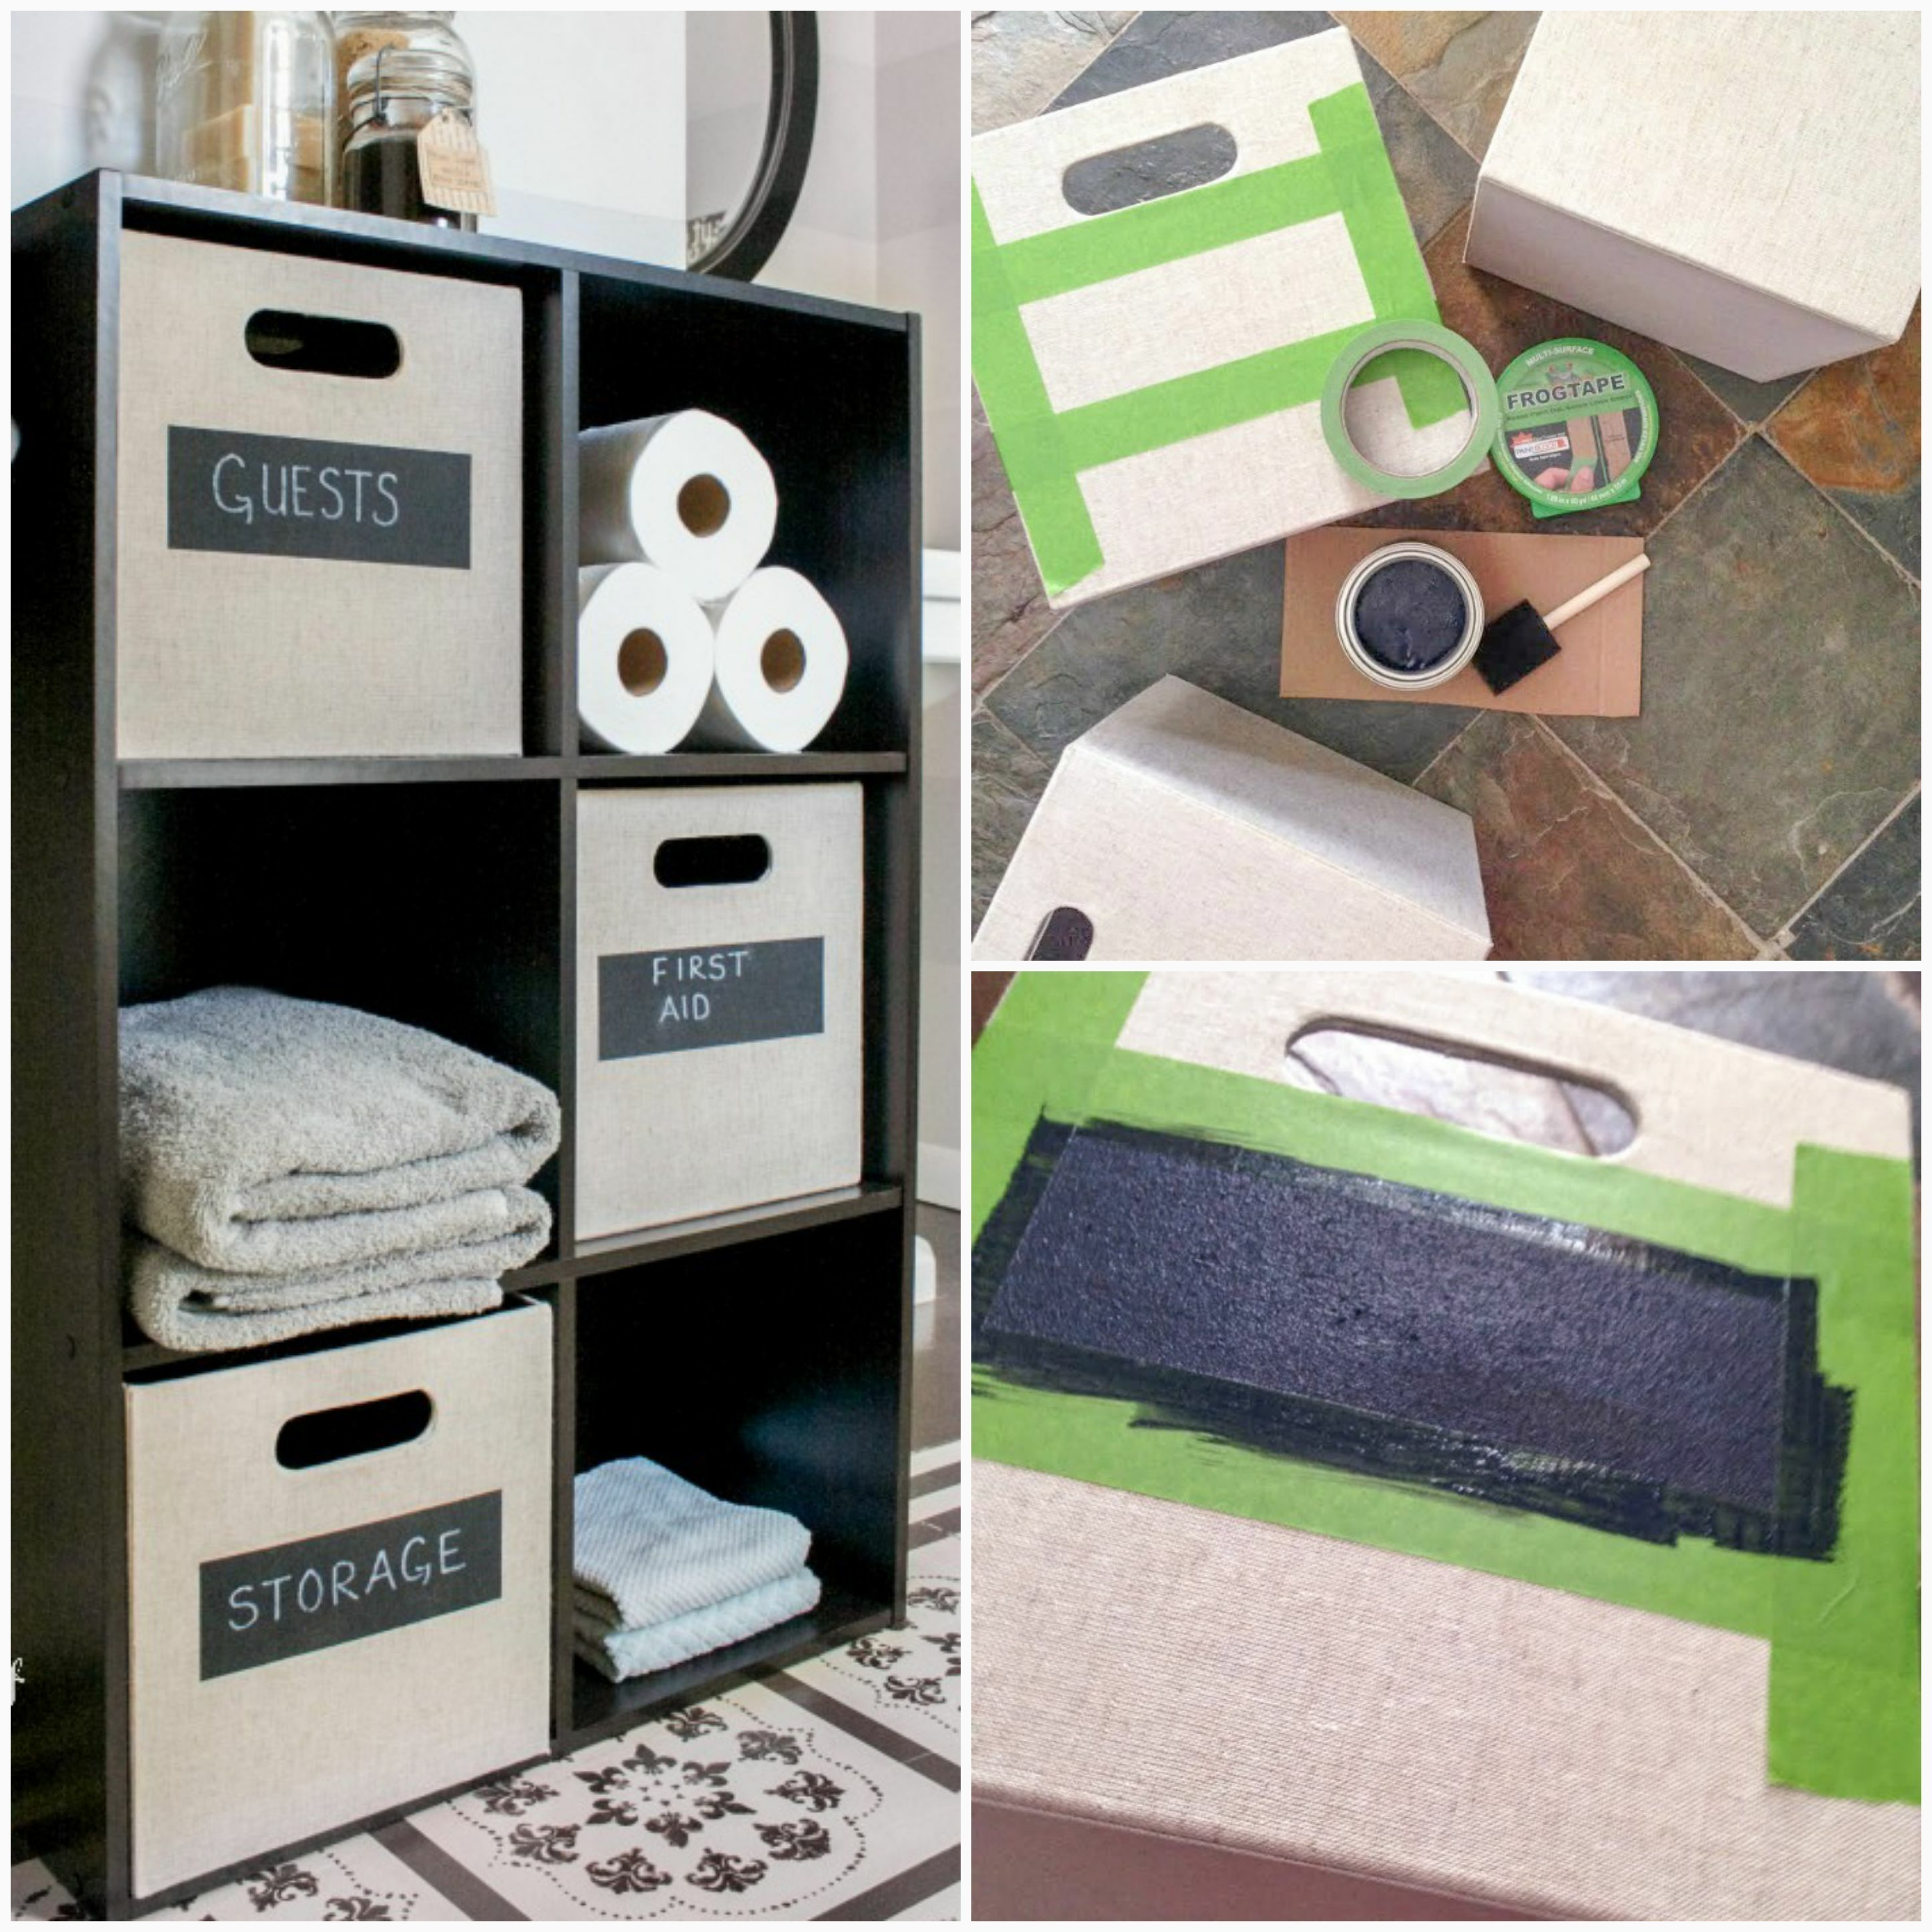 Diy Bins Great For A Kids Room Crafts Bathroom Or In The Clroom Supplies Needed